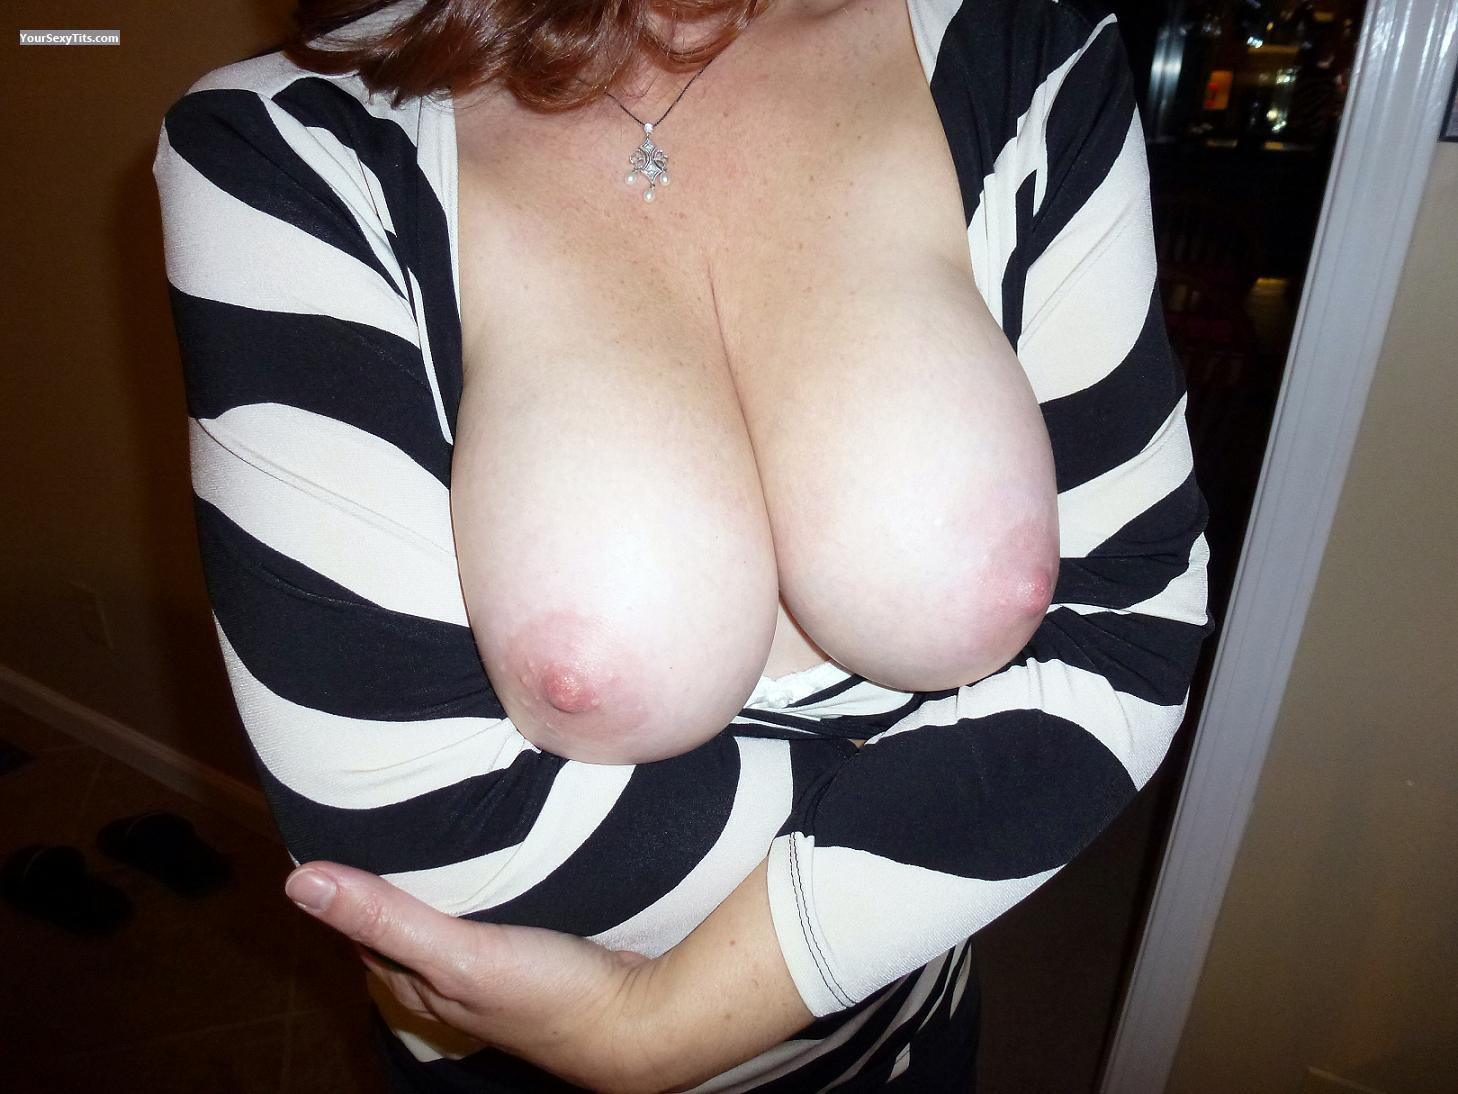 Tit Flash: Wife's Big Tits - Slightly Shy from United States